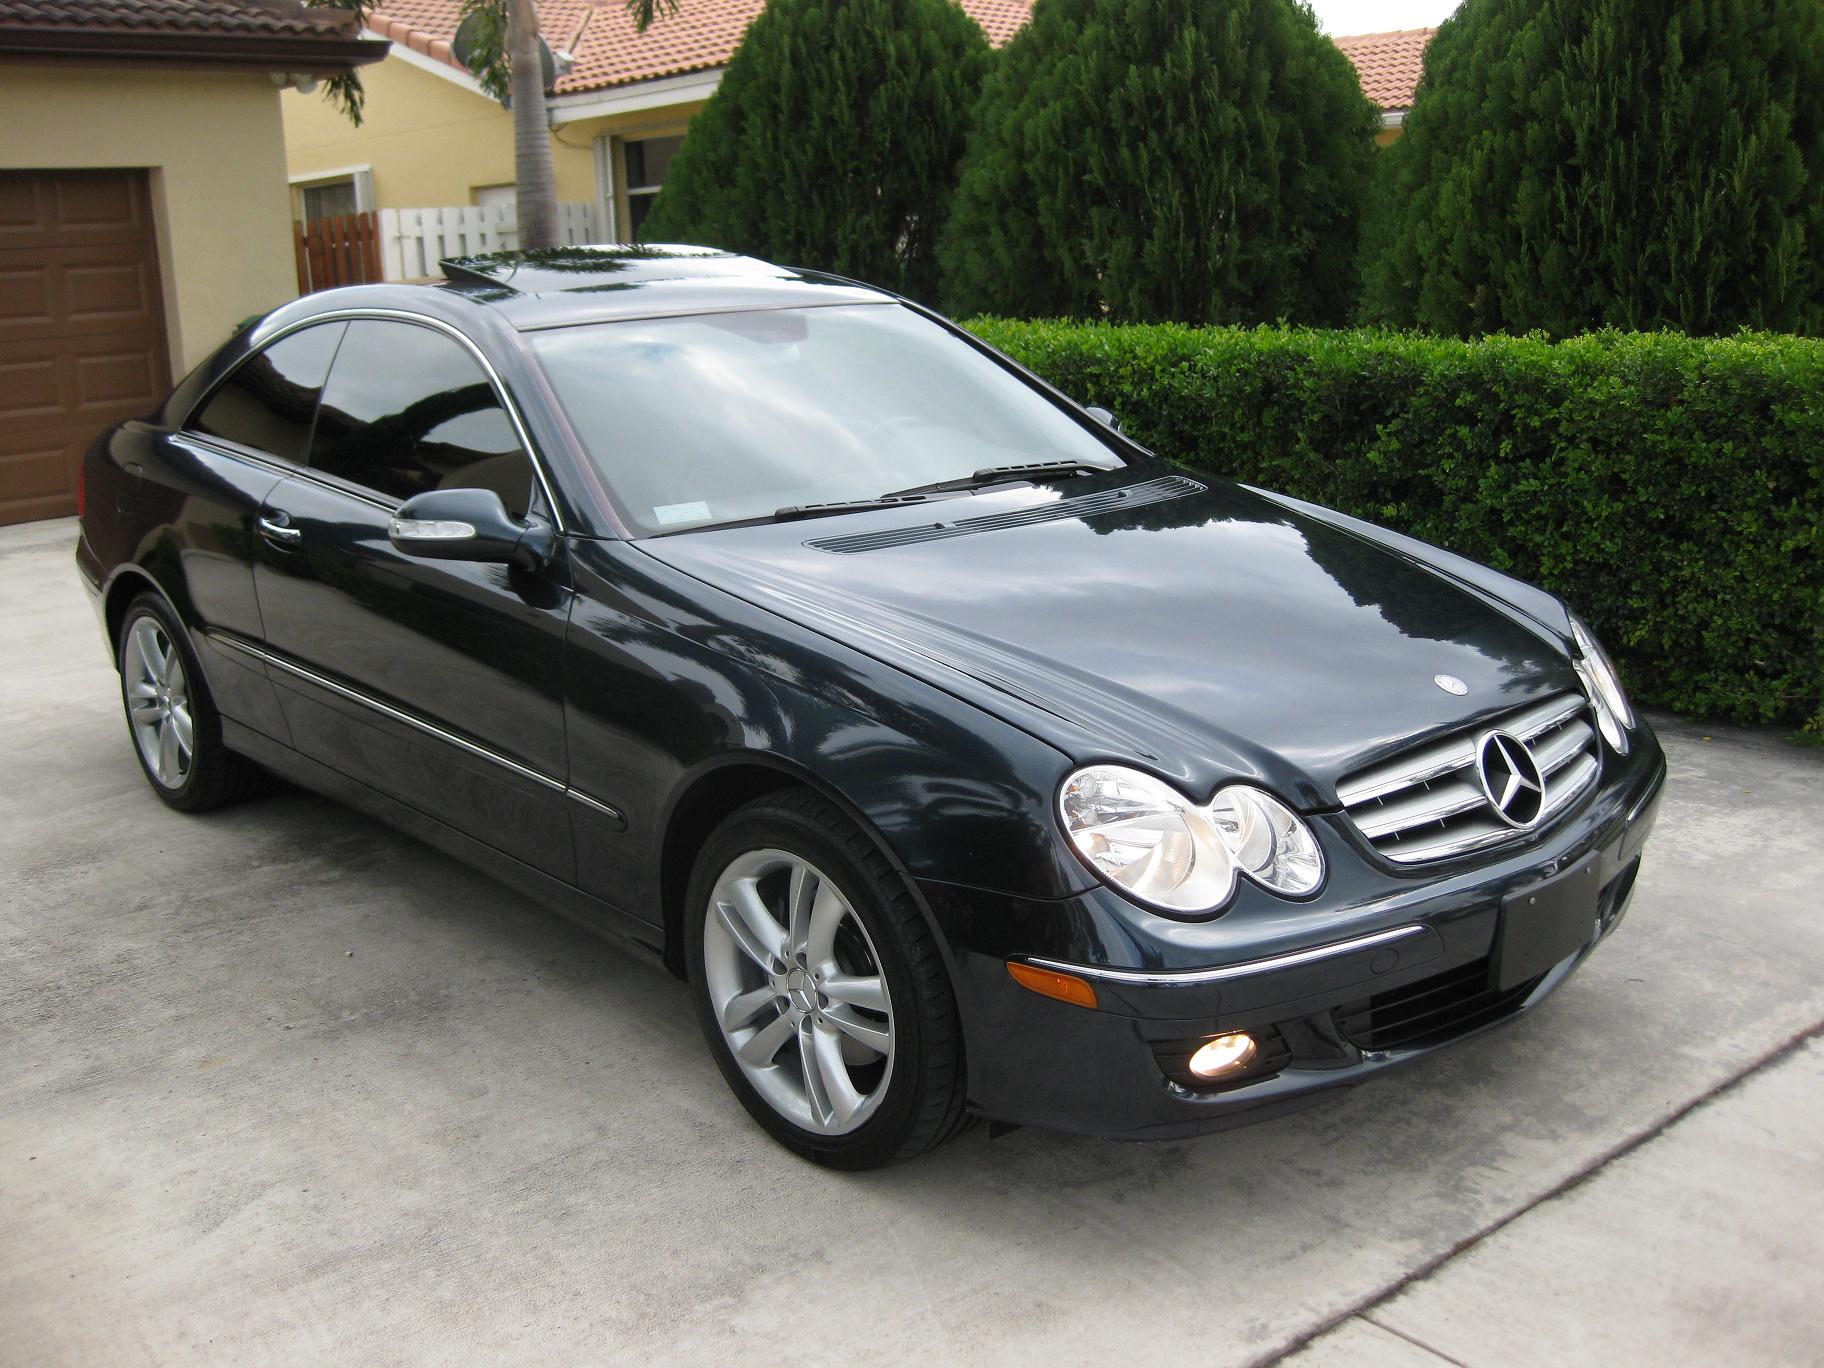 Mercedes benz clk350 picture 9 reviews news specs for Mercedes benz news